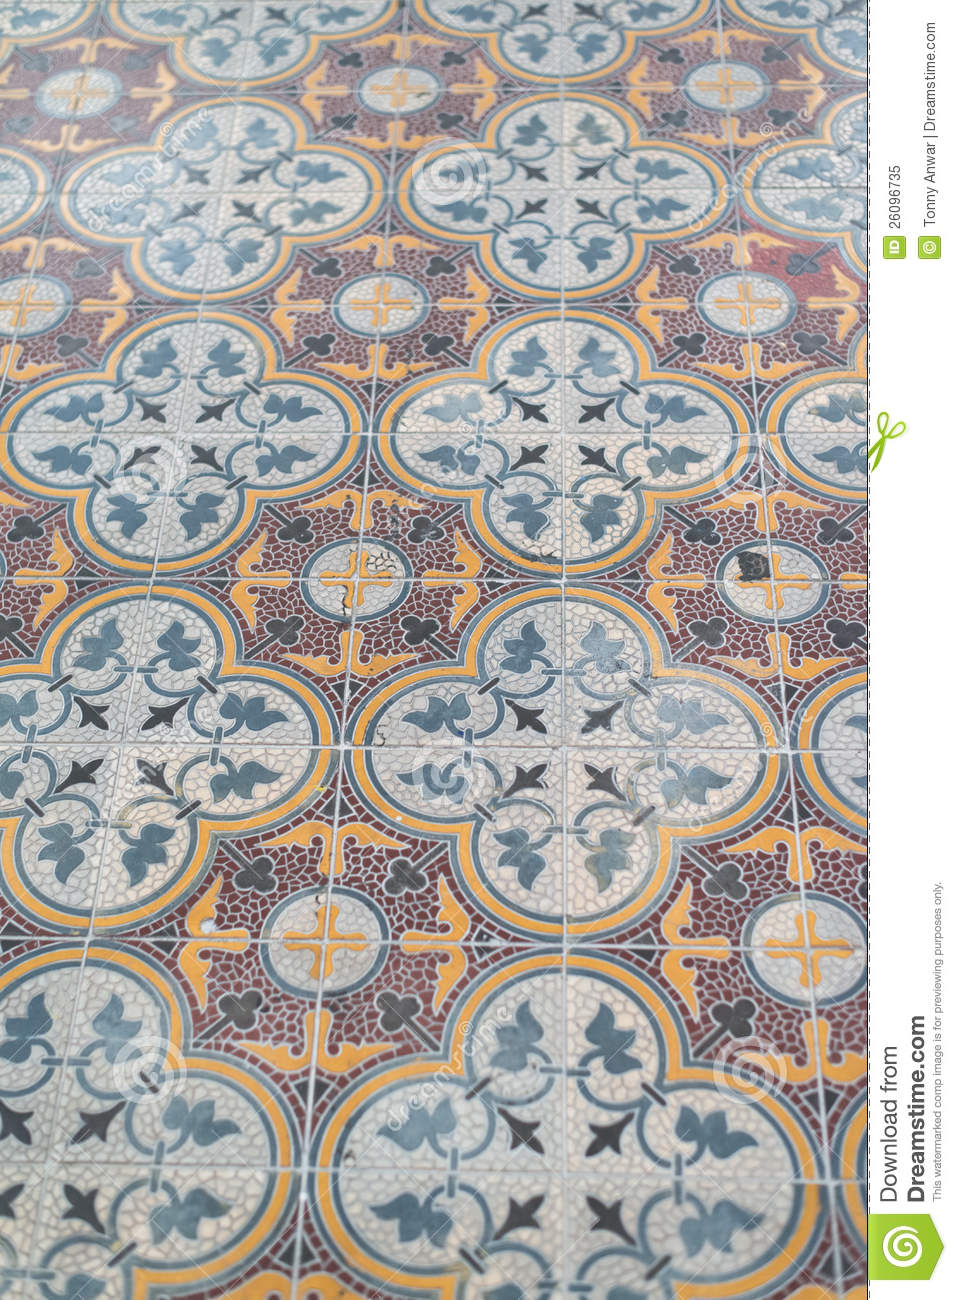 Peranakan Tile Flooring Royalty Free Stock Photo Image